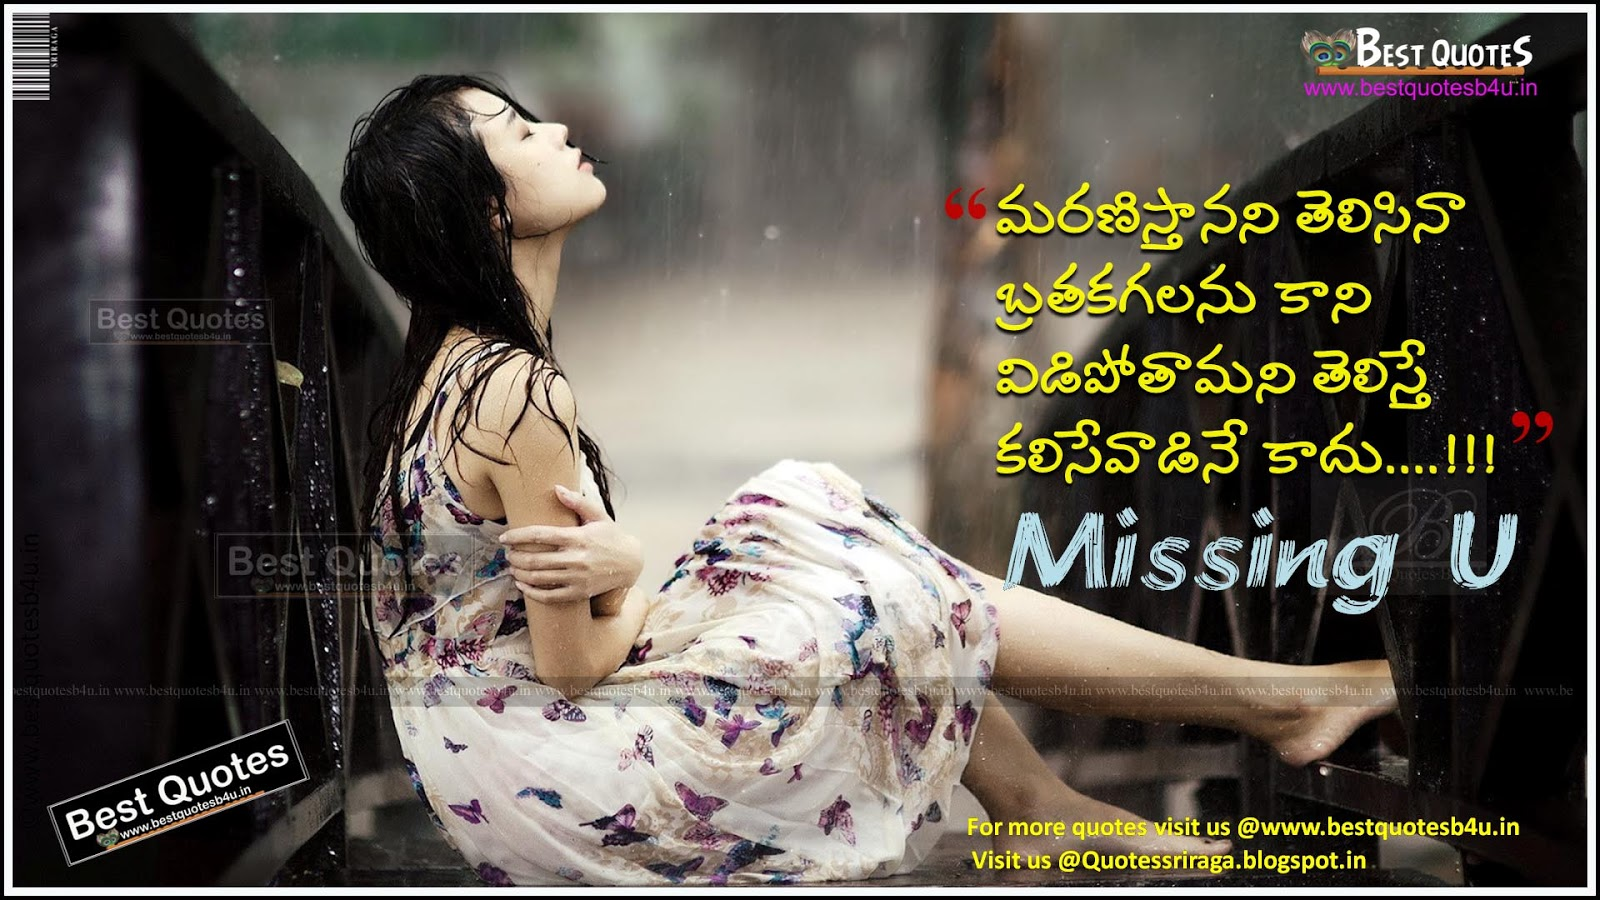 Best Love Quotes For Girlfriend In Telugu : you telugu love messages online best love greetings and sad quotes